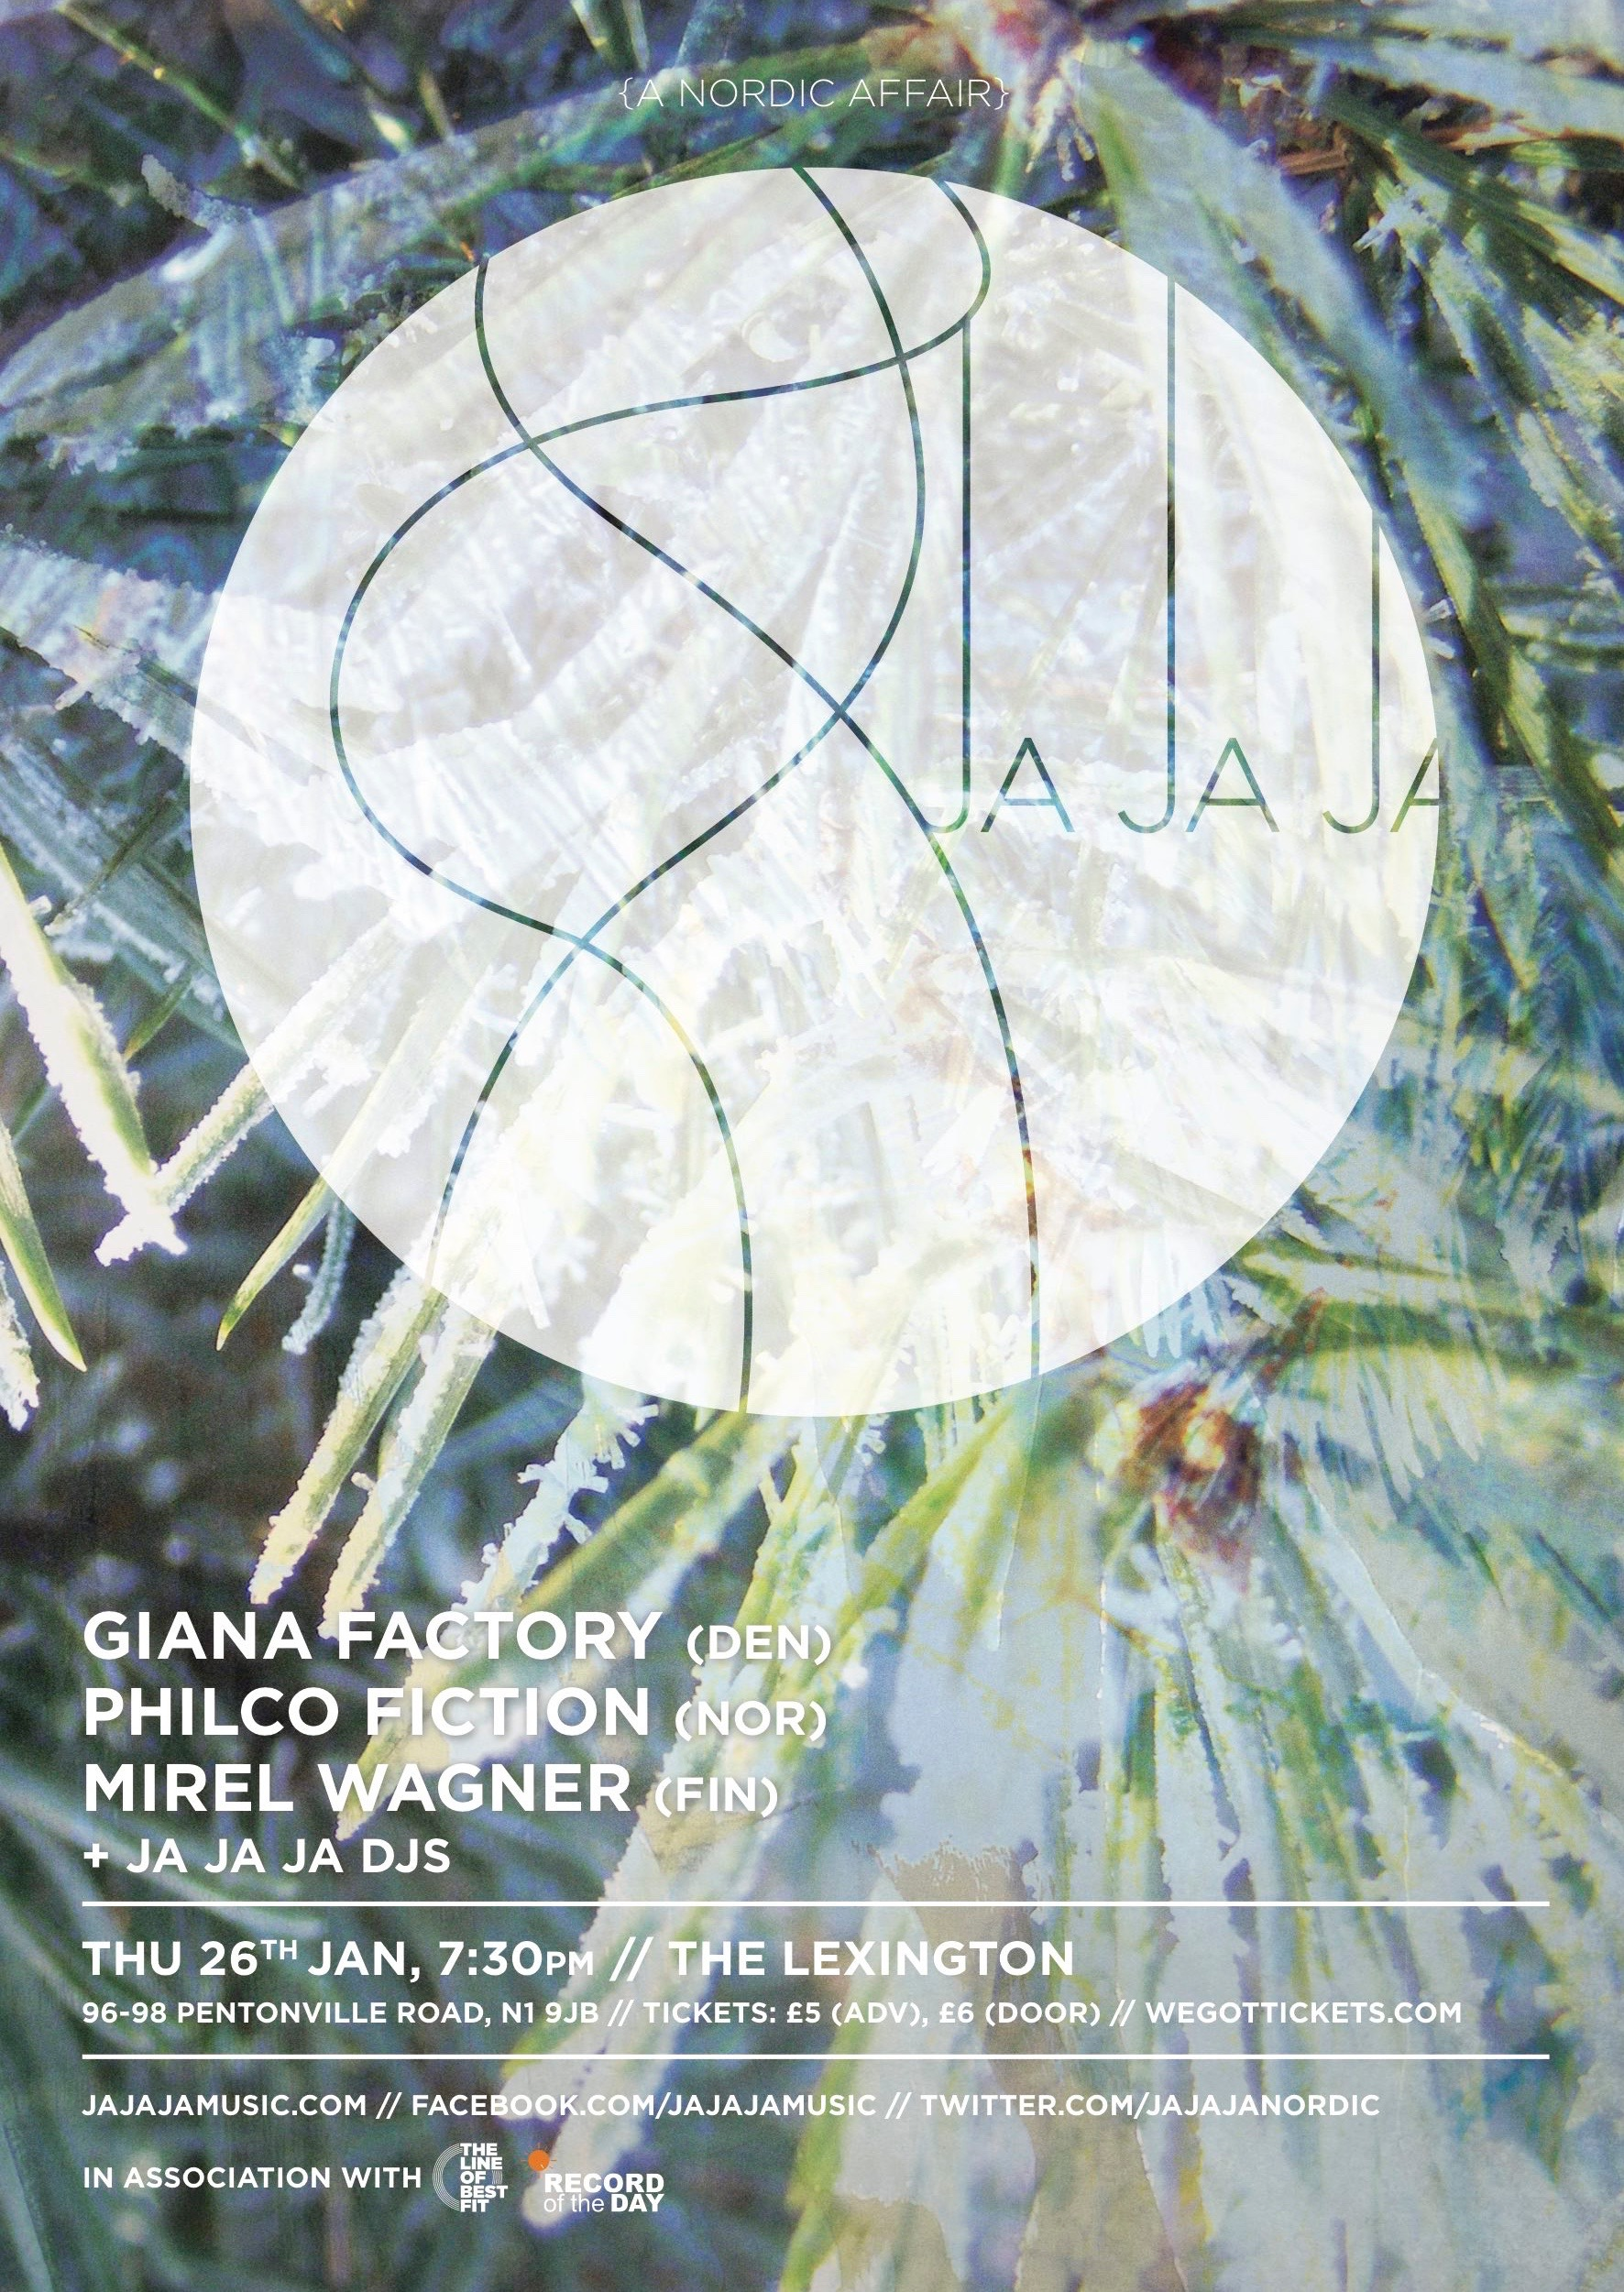 January 2012 – Giana Factory, Philco Fiction & Mirel Wagner